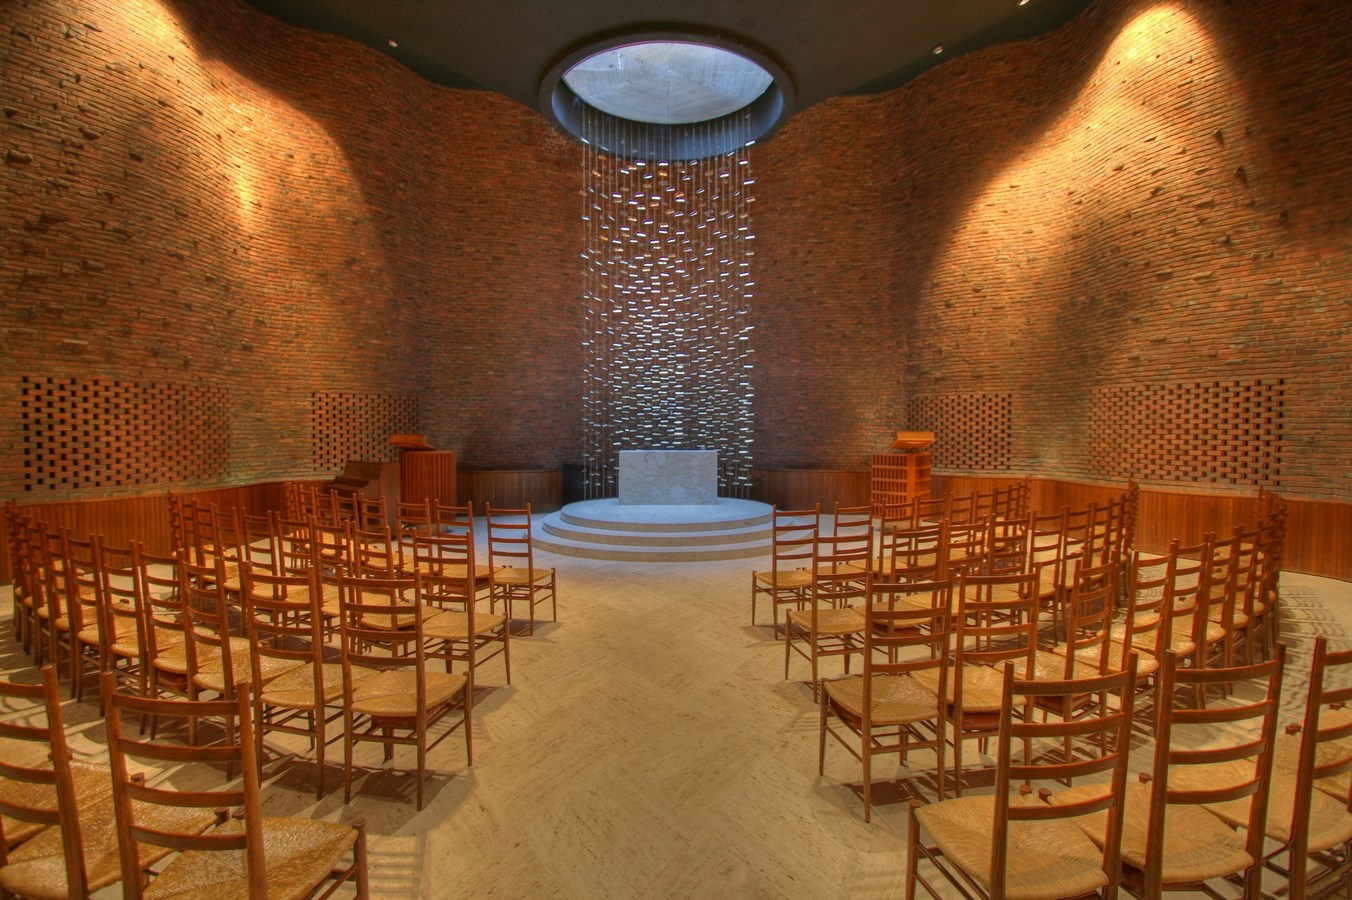 25 Most Iconic Structures In Boston - MIT CHAPEL - Sheet1